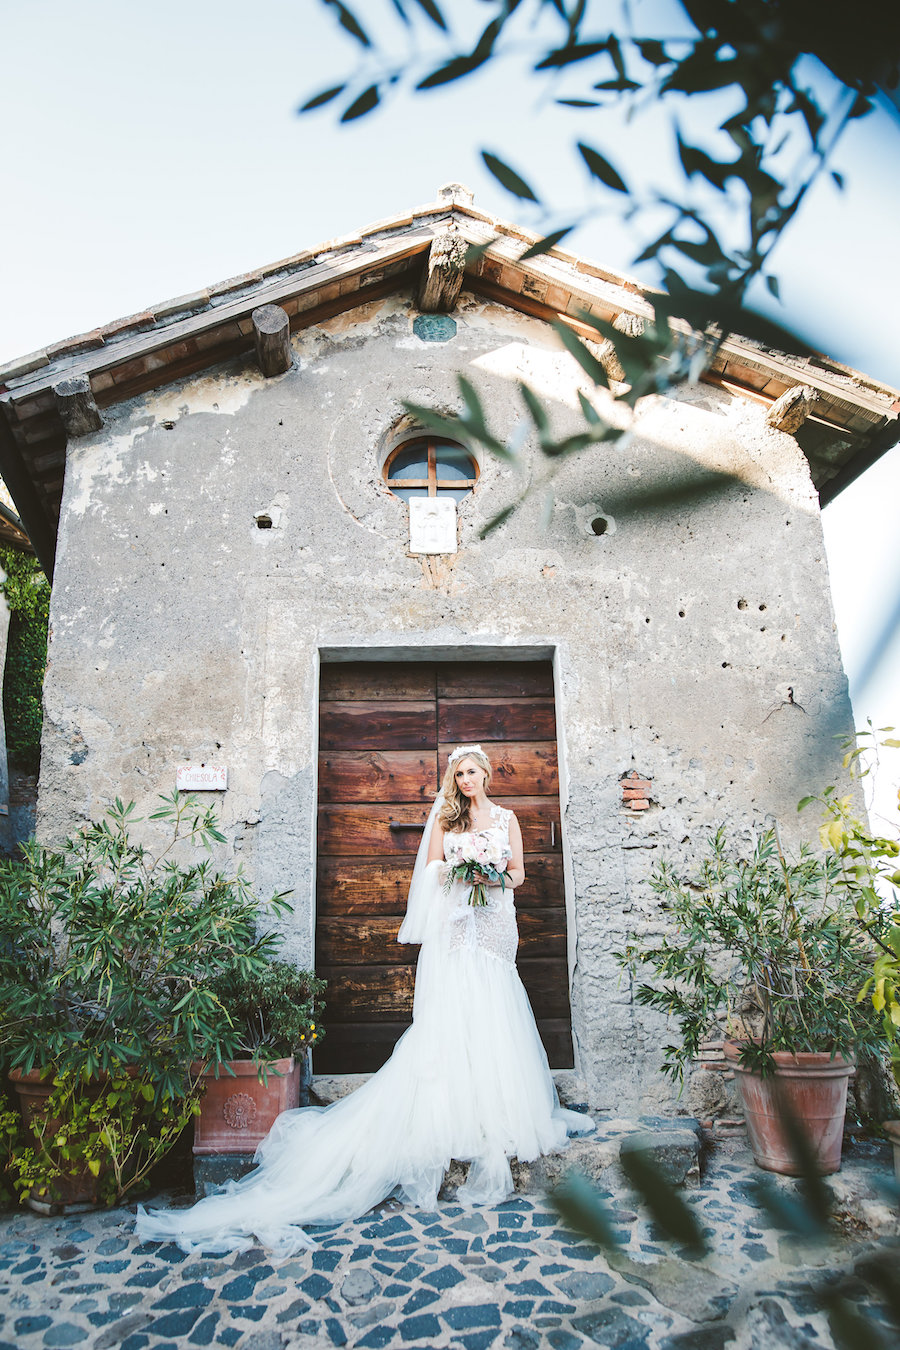 Naama and Anat, Naama and Anat Haute Couture, couture wedding gown, wedding dress, Italian Countryside Wedding, Diva Gown, Peggy Maison Pestea, bride